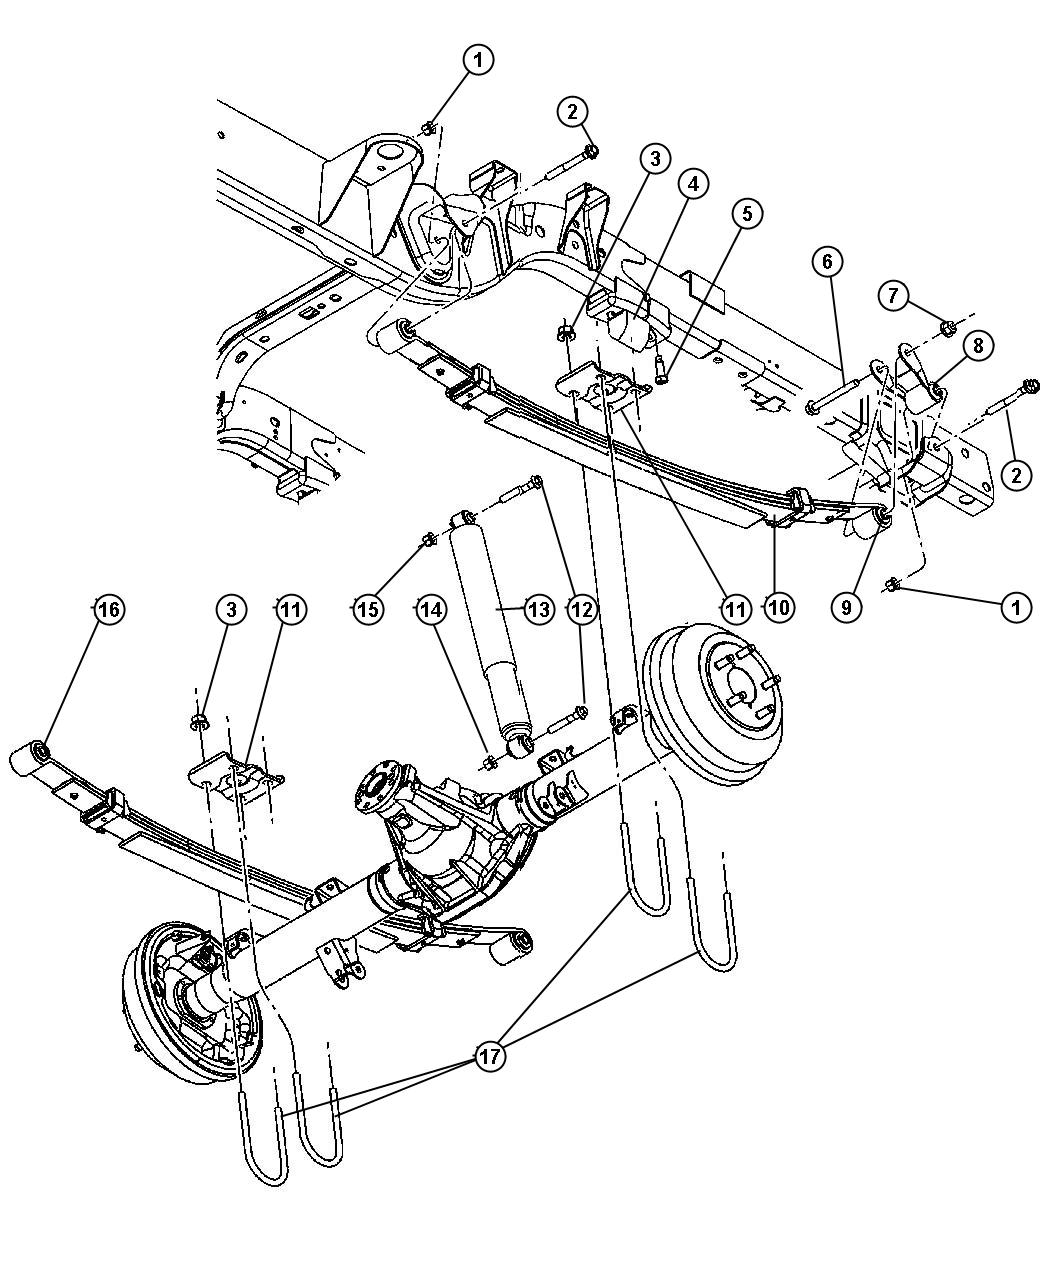 98 dodge dakota front suspension diagram  dodge  auto